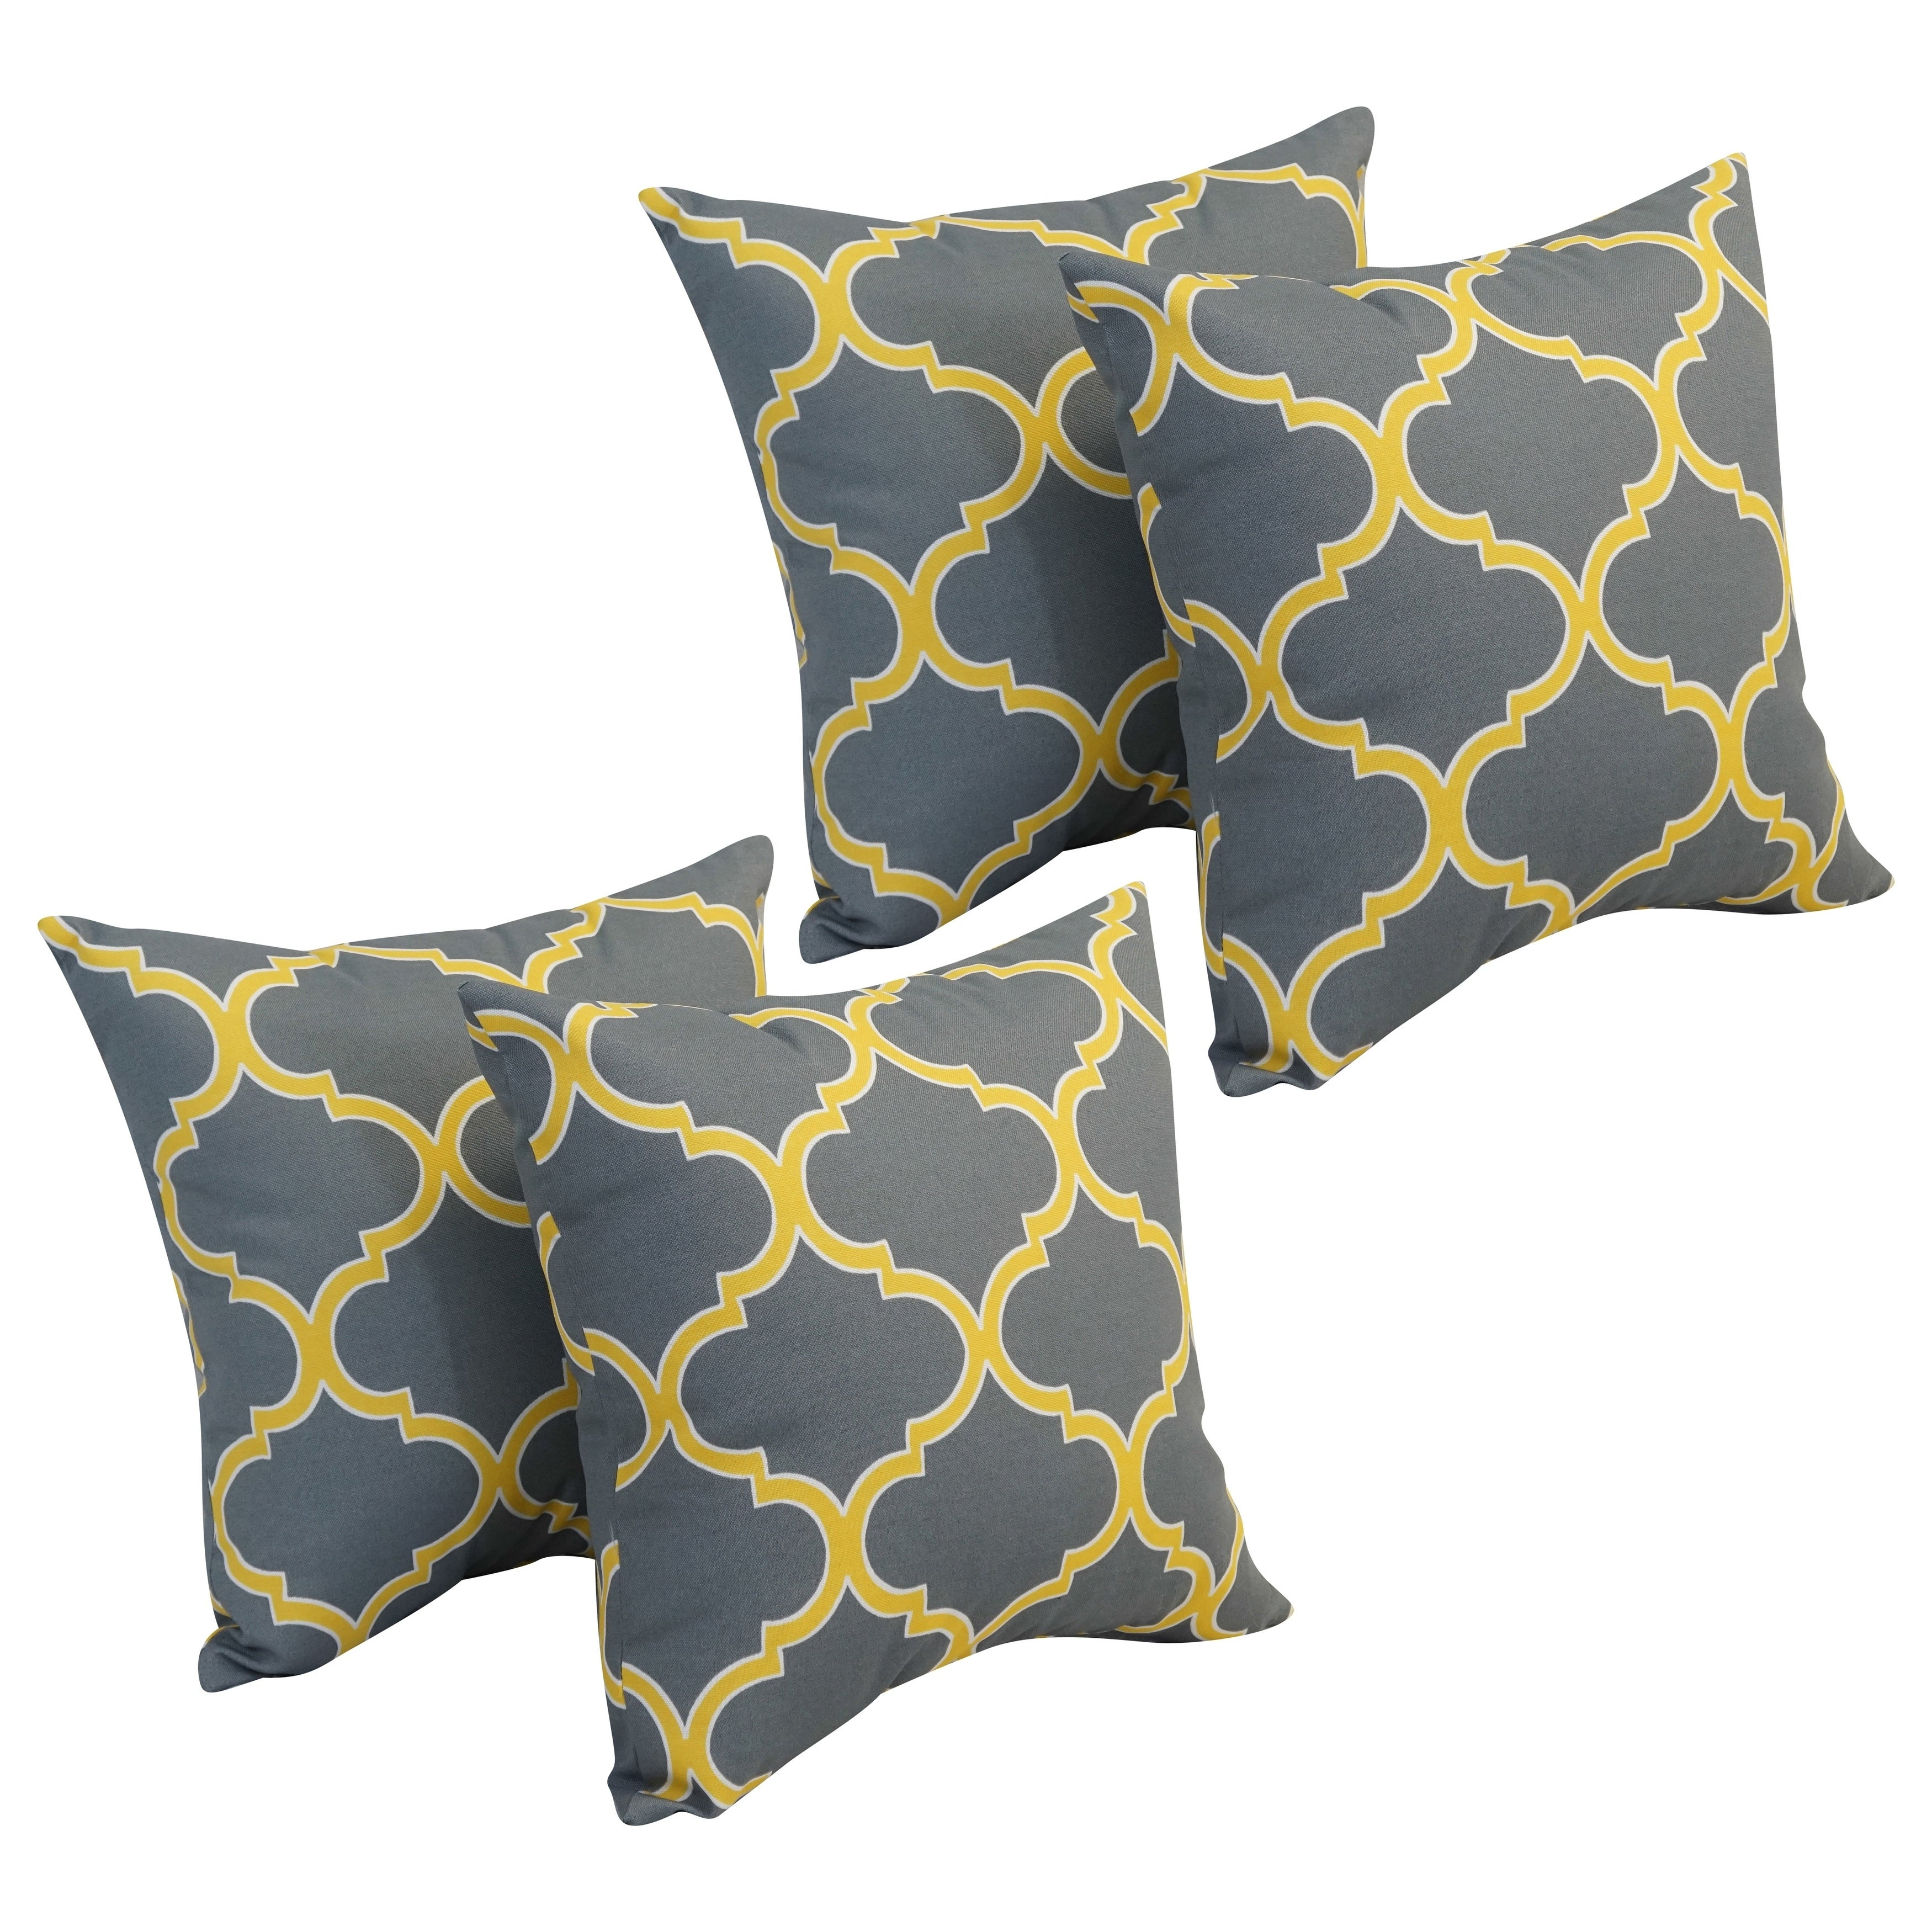 Blazing Needles 7-inch Square Polyester Outdoor Throw Pillows (Set of 7)